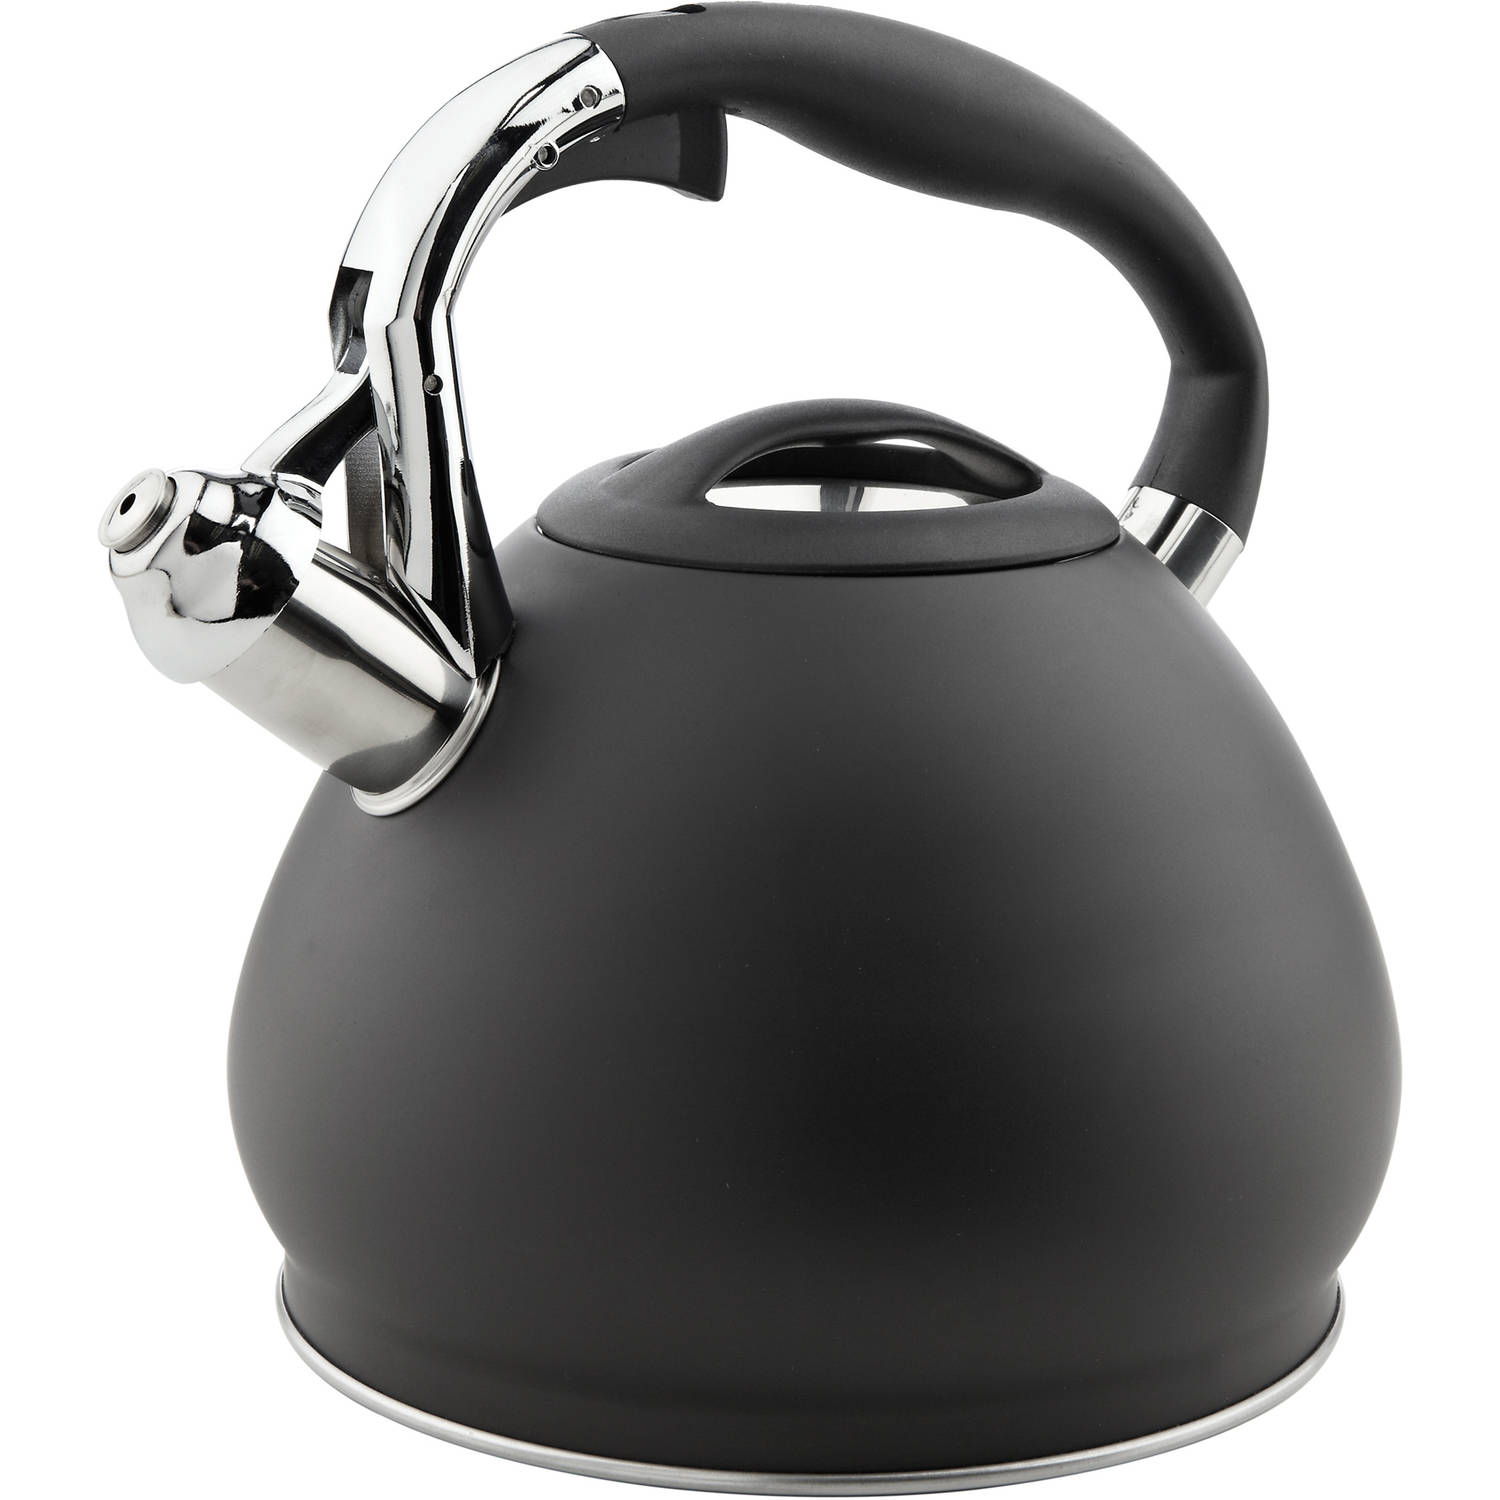 Kitchen Details 3.4L Whistling Tea Kettle